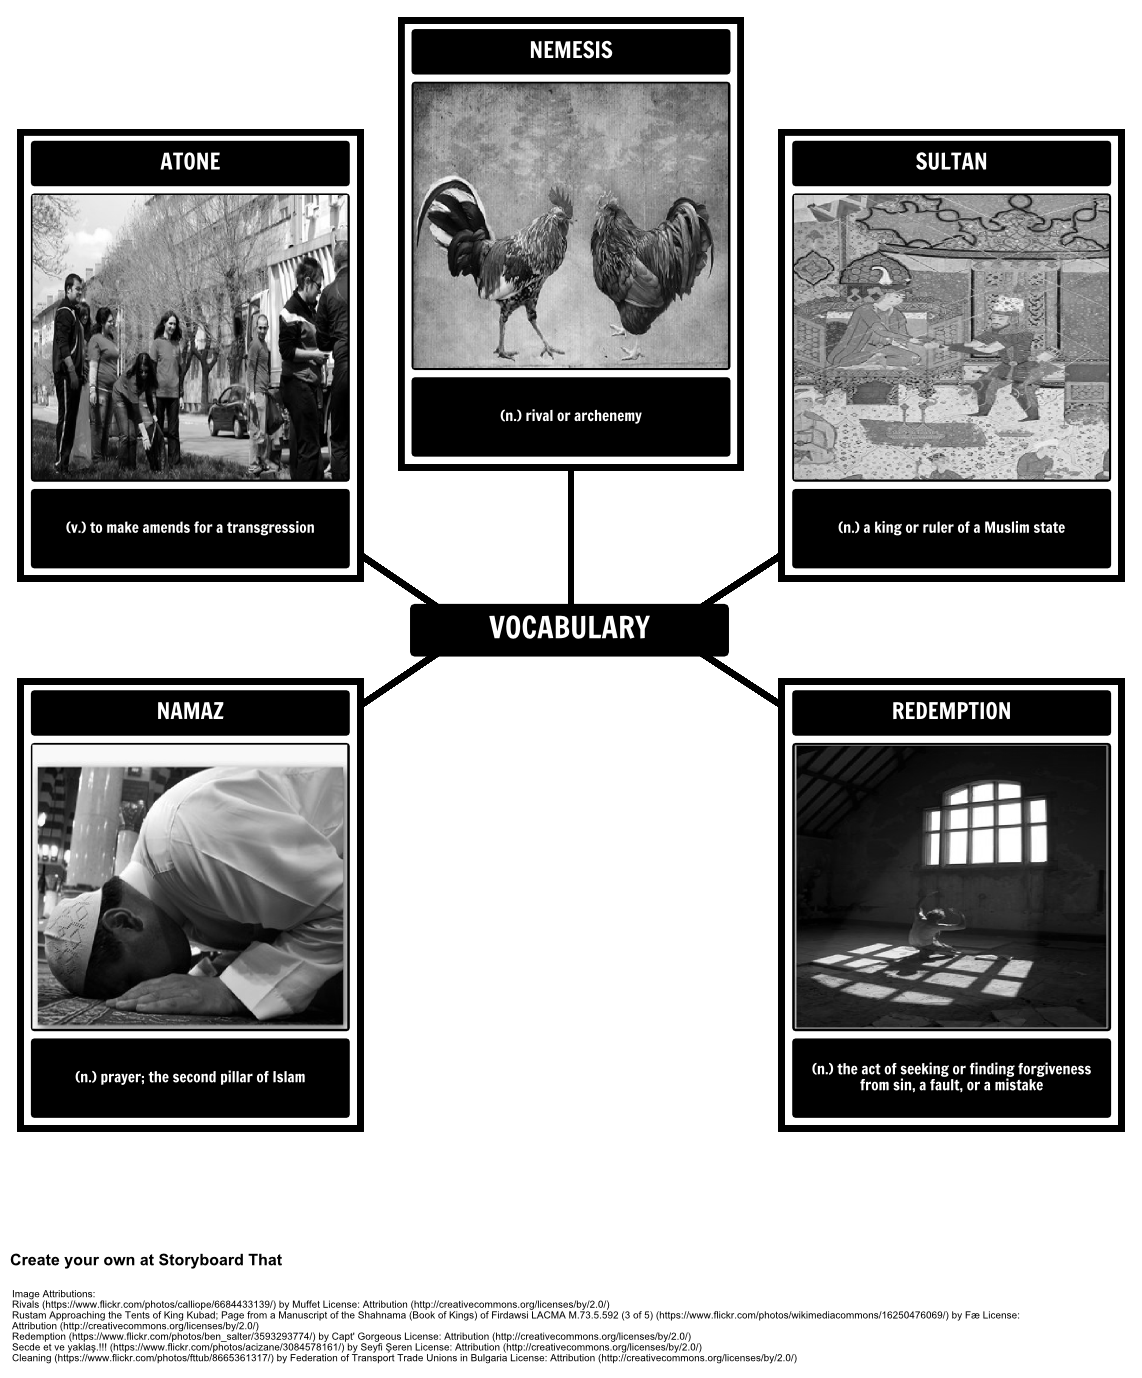 The Kite Runner By Khaled Hosseini Visual Vocabulary Board Use A Spider Map Graphic Organizer Sto The Kite Runner Vocabulary Lesson Plans Photos For Class